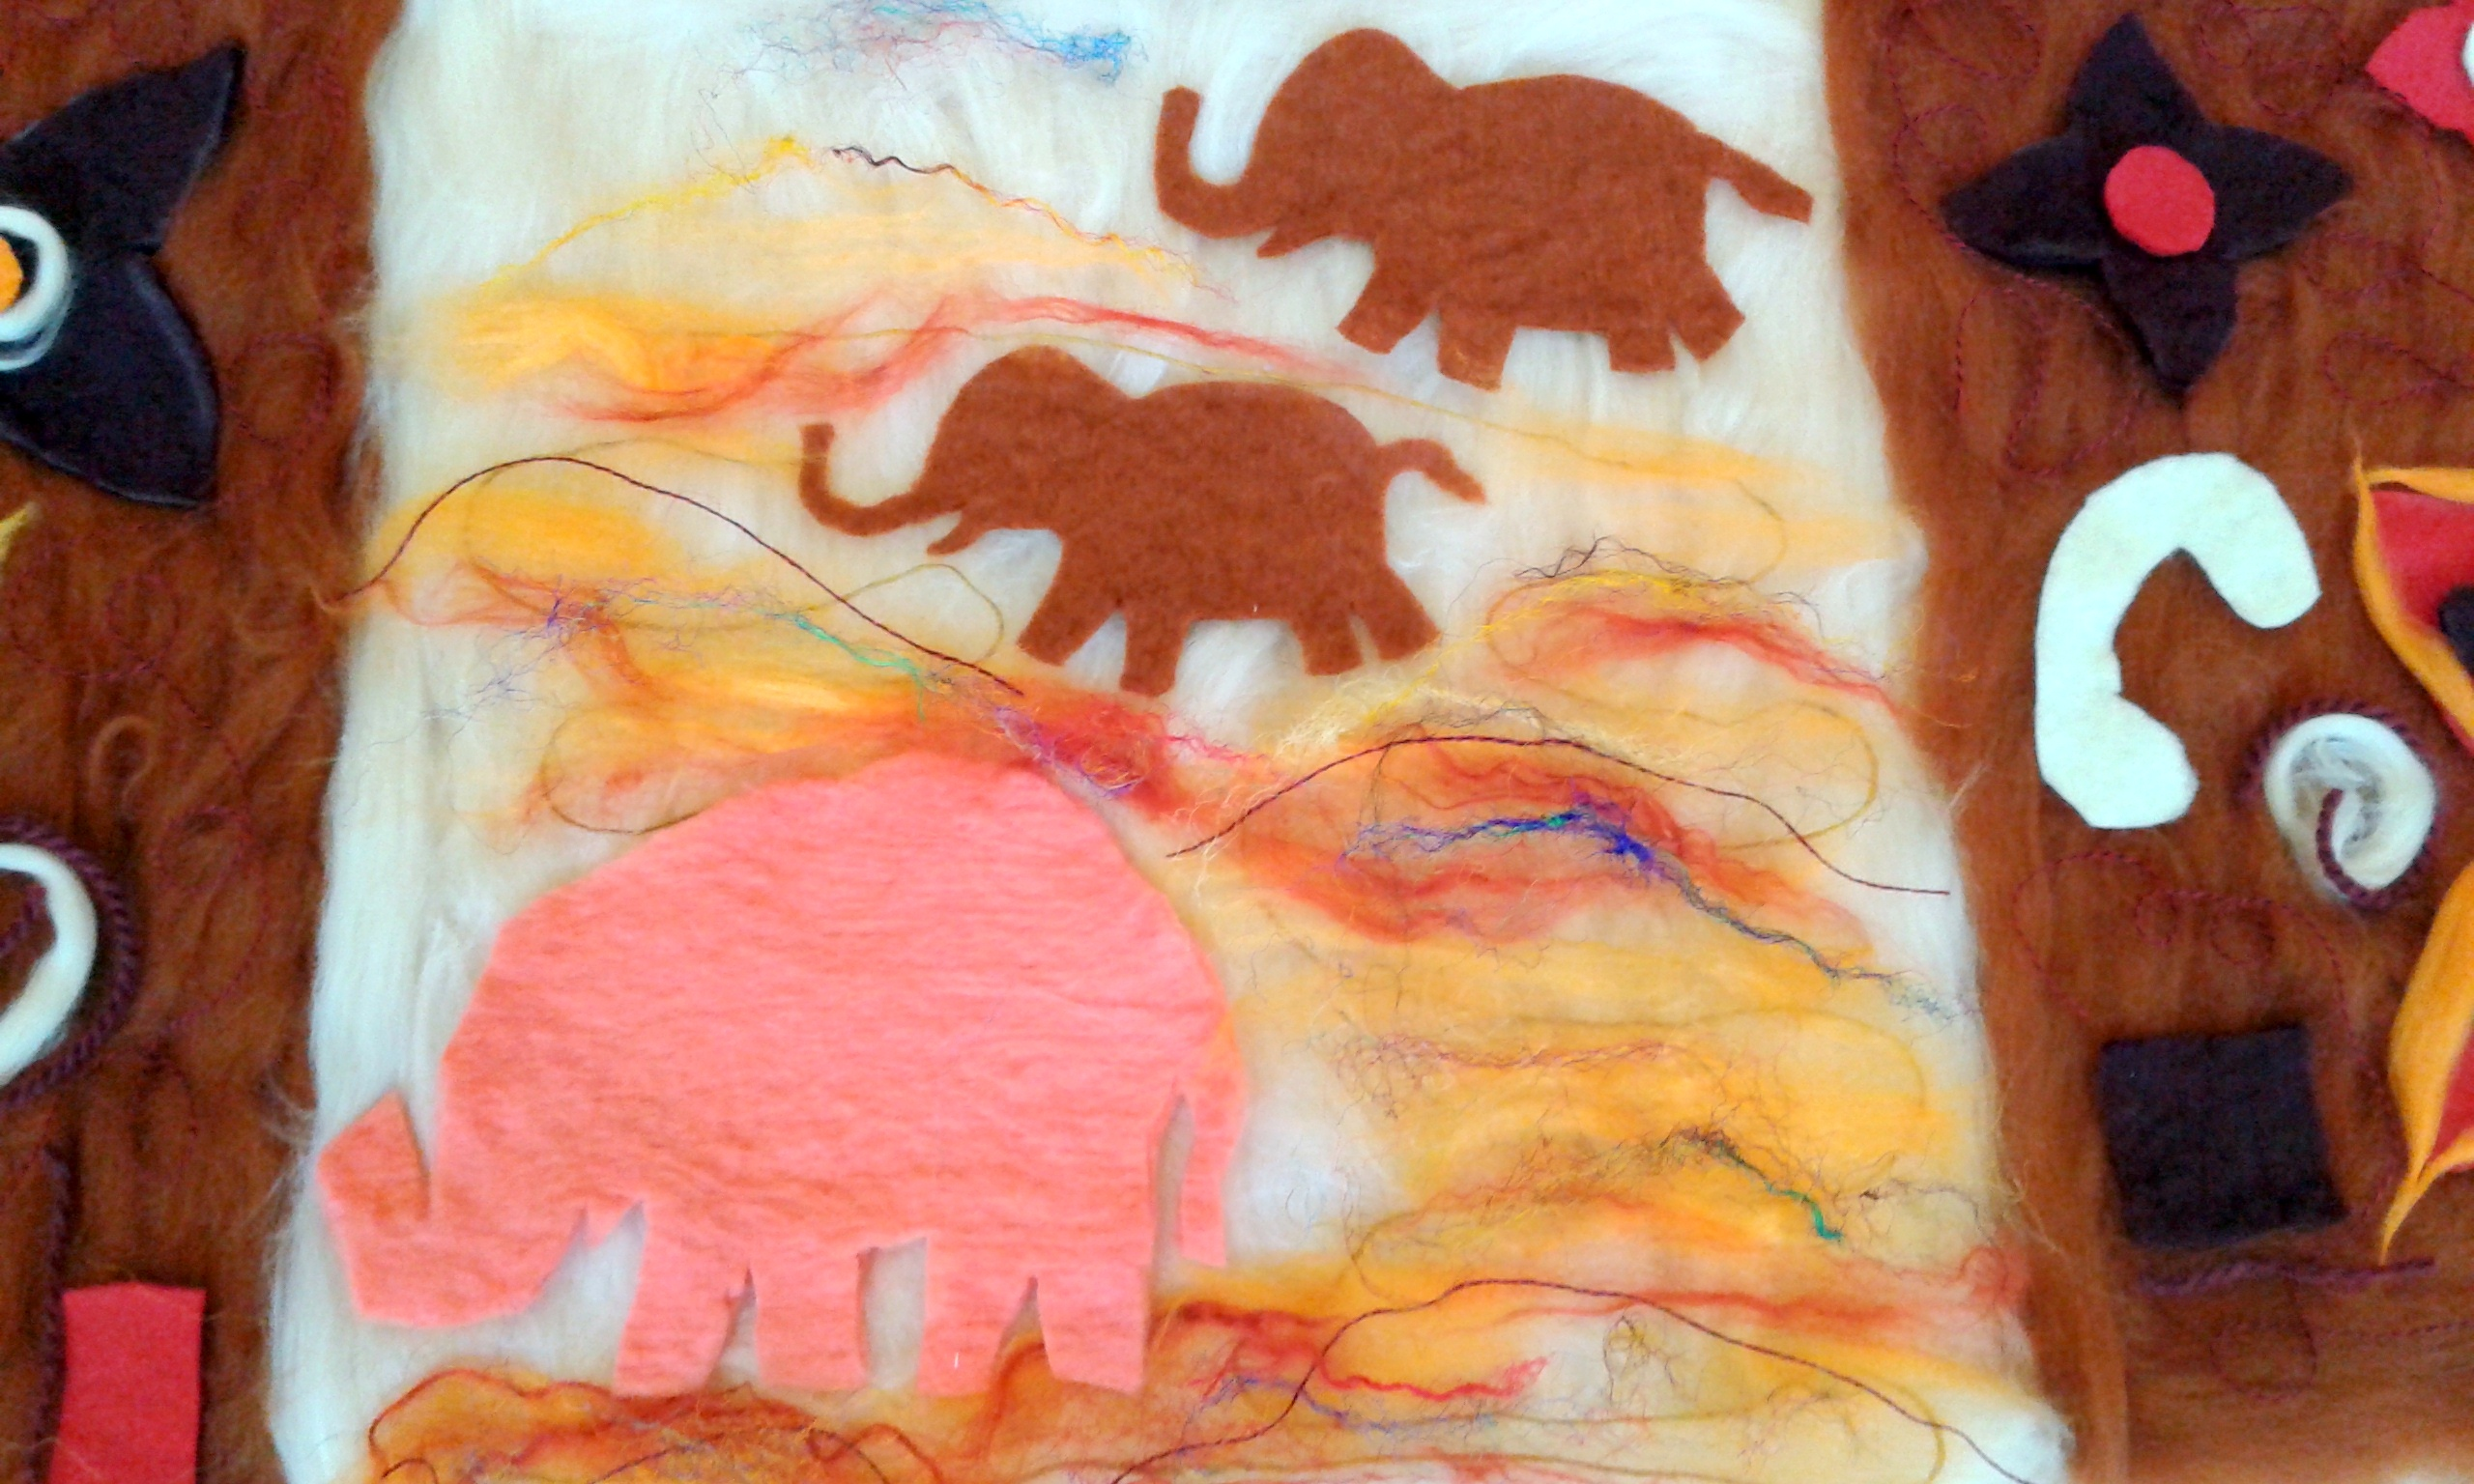 Part of a banner with elephants